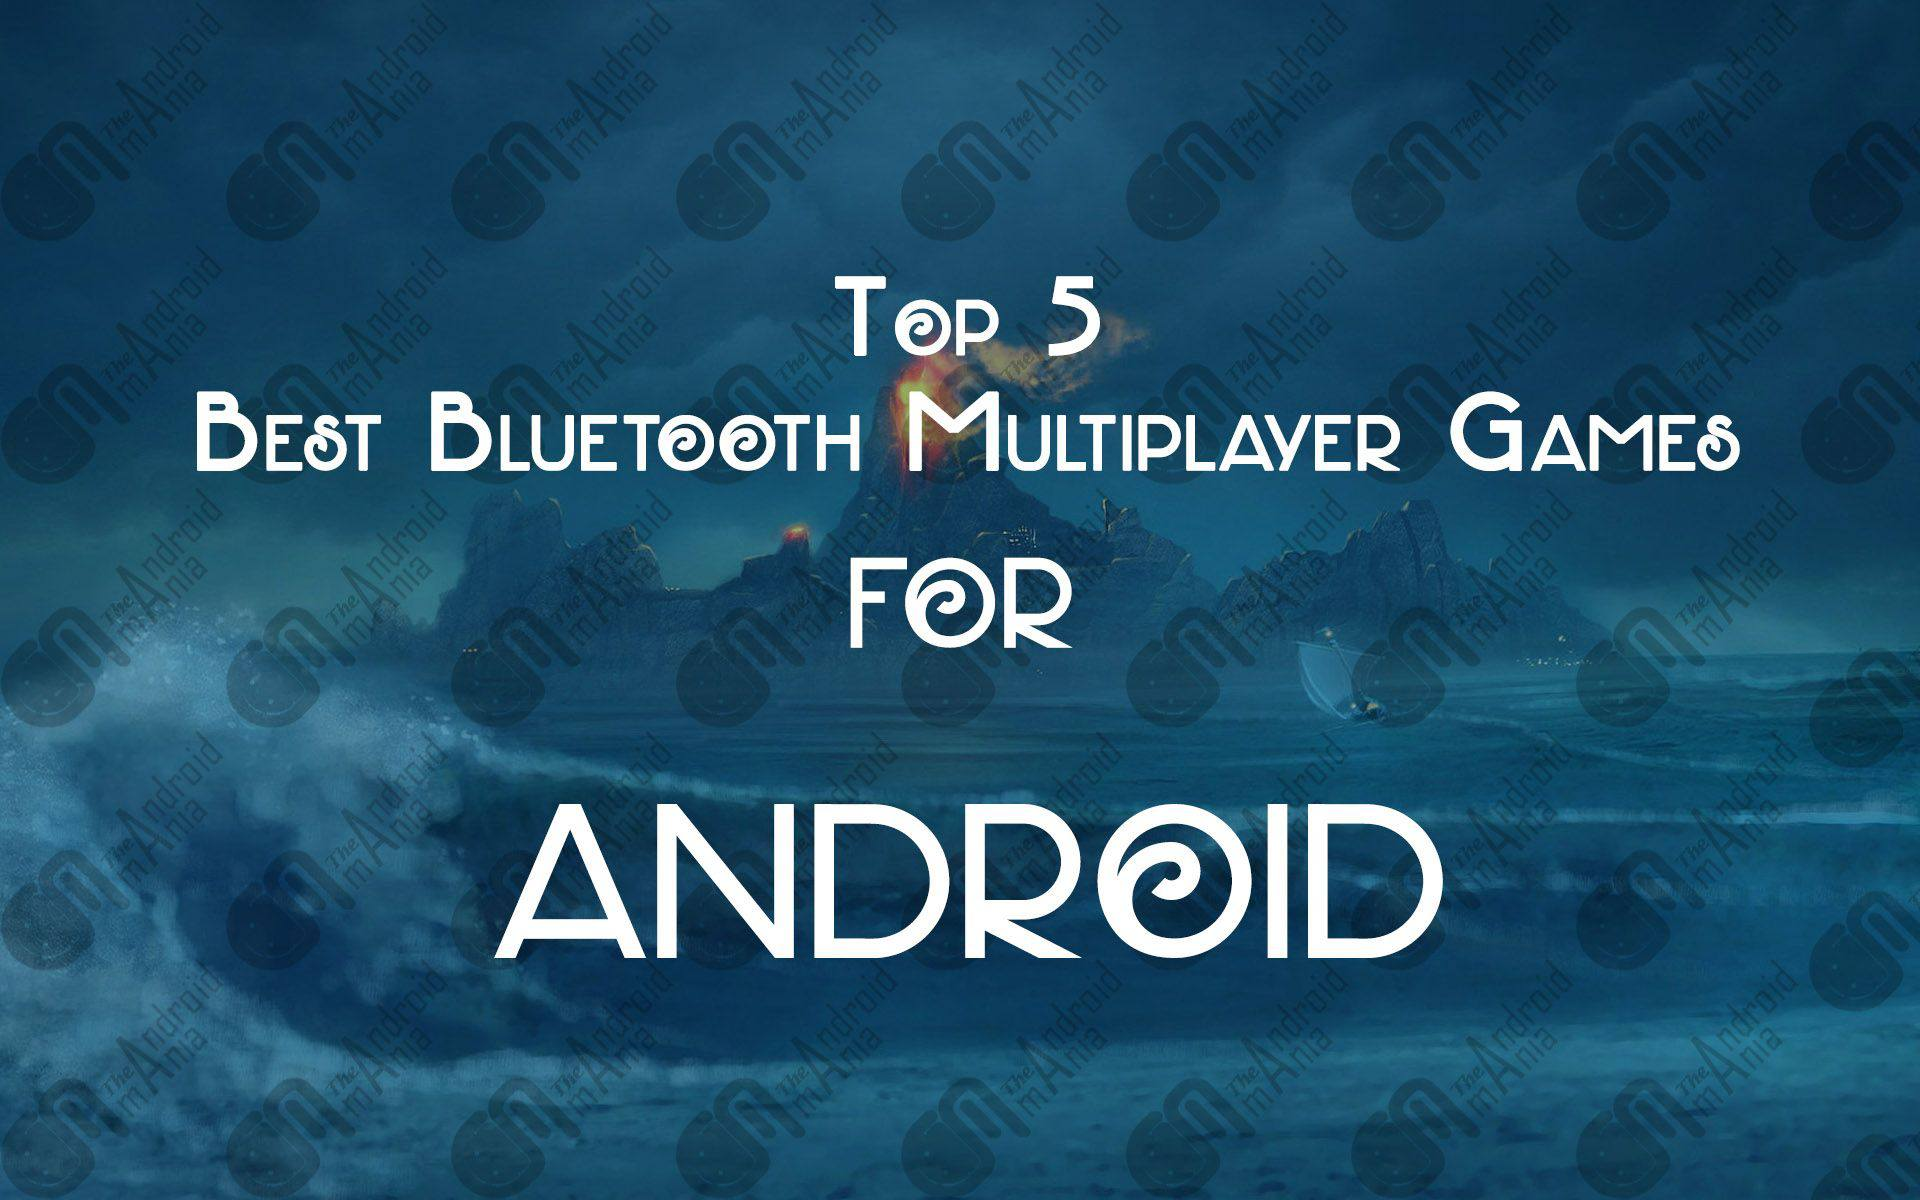 top-5-best-bluetooth-multiplayer-game-for-android-mania